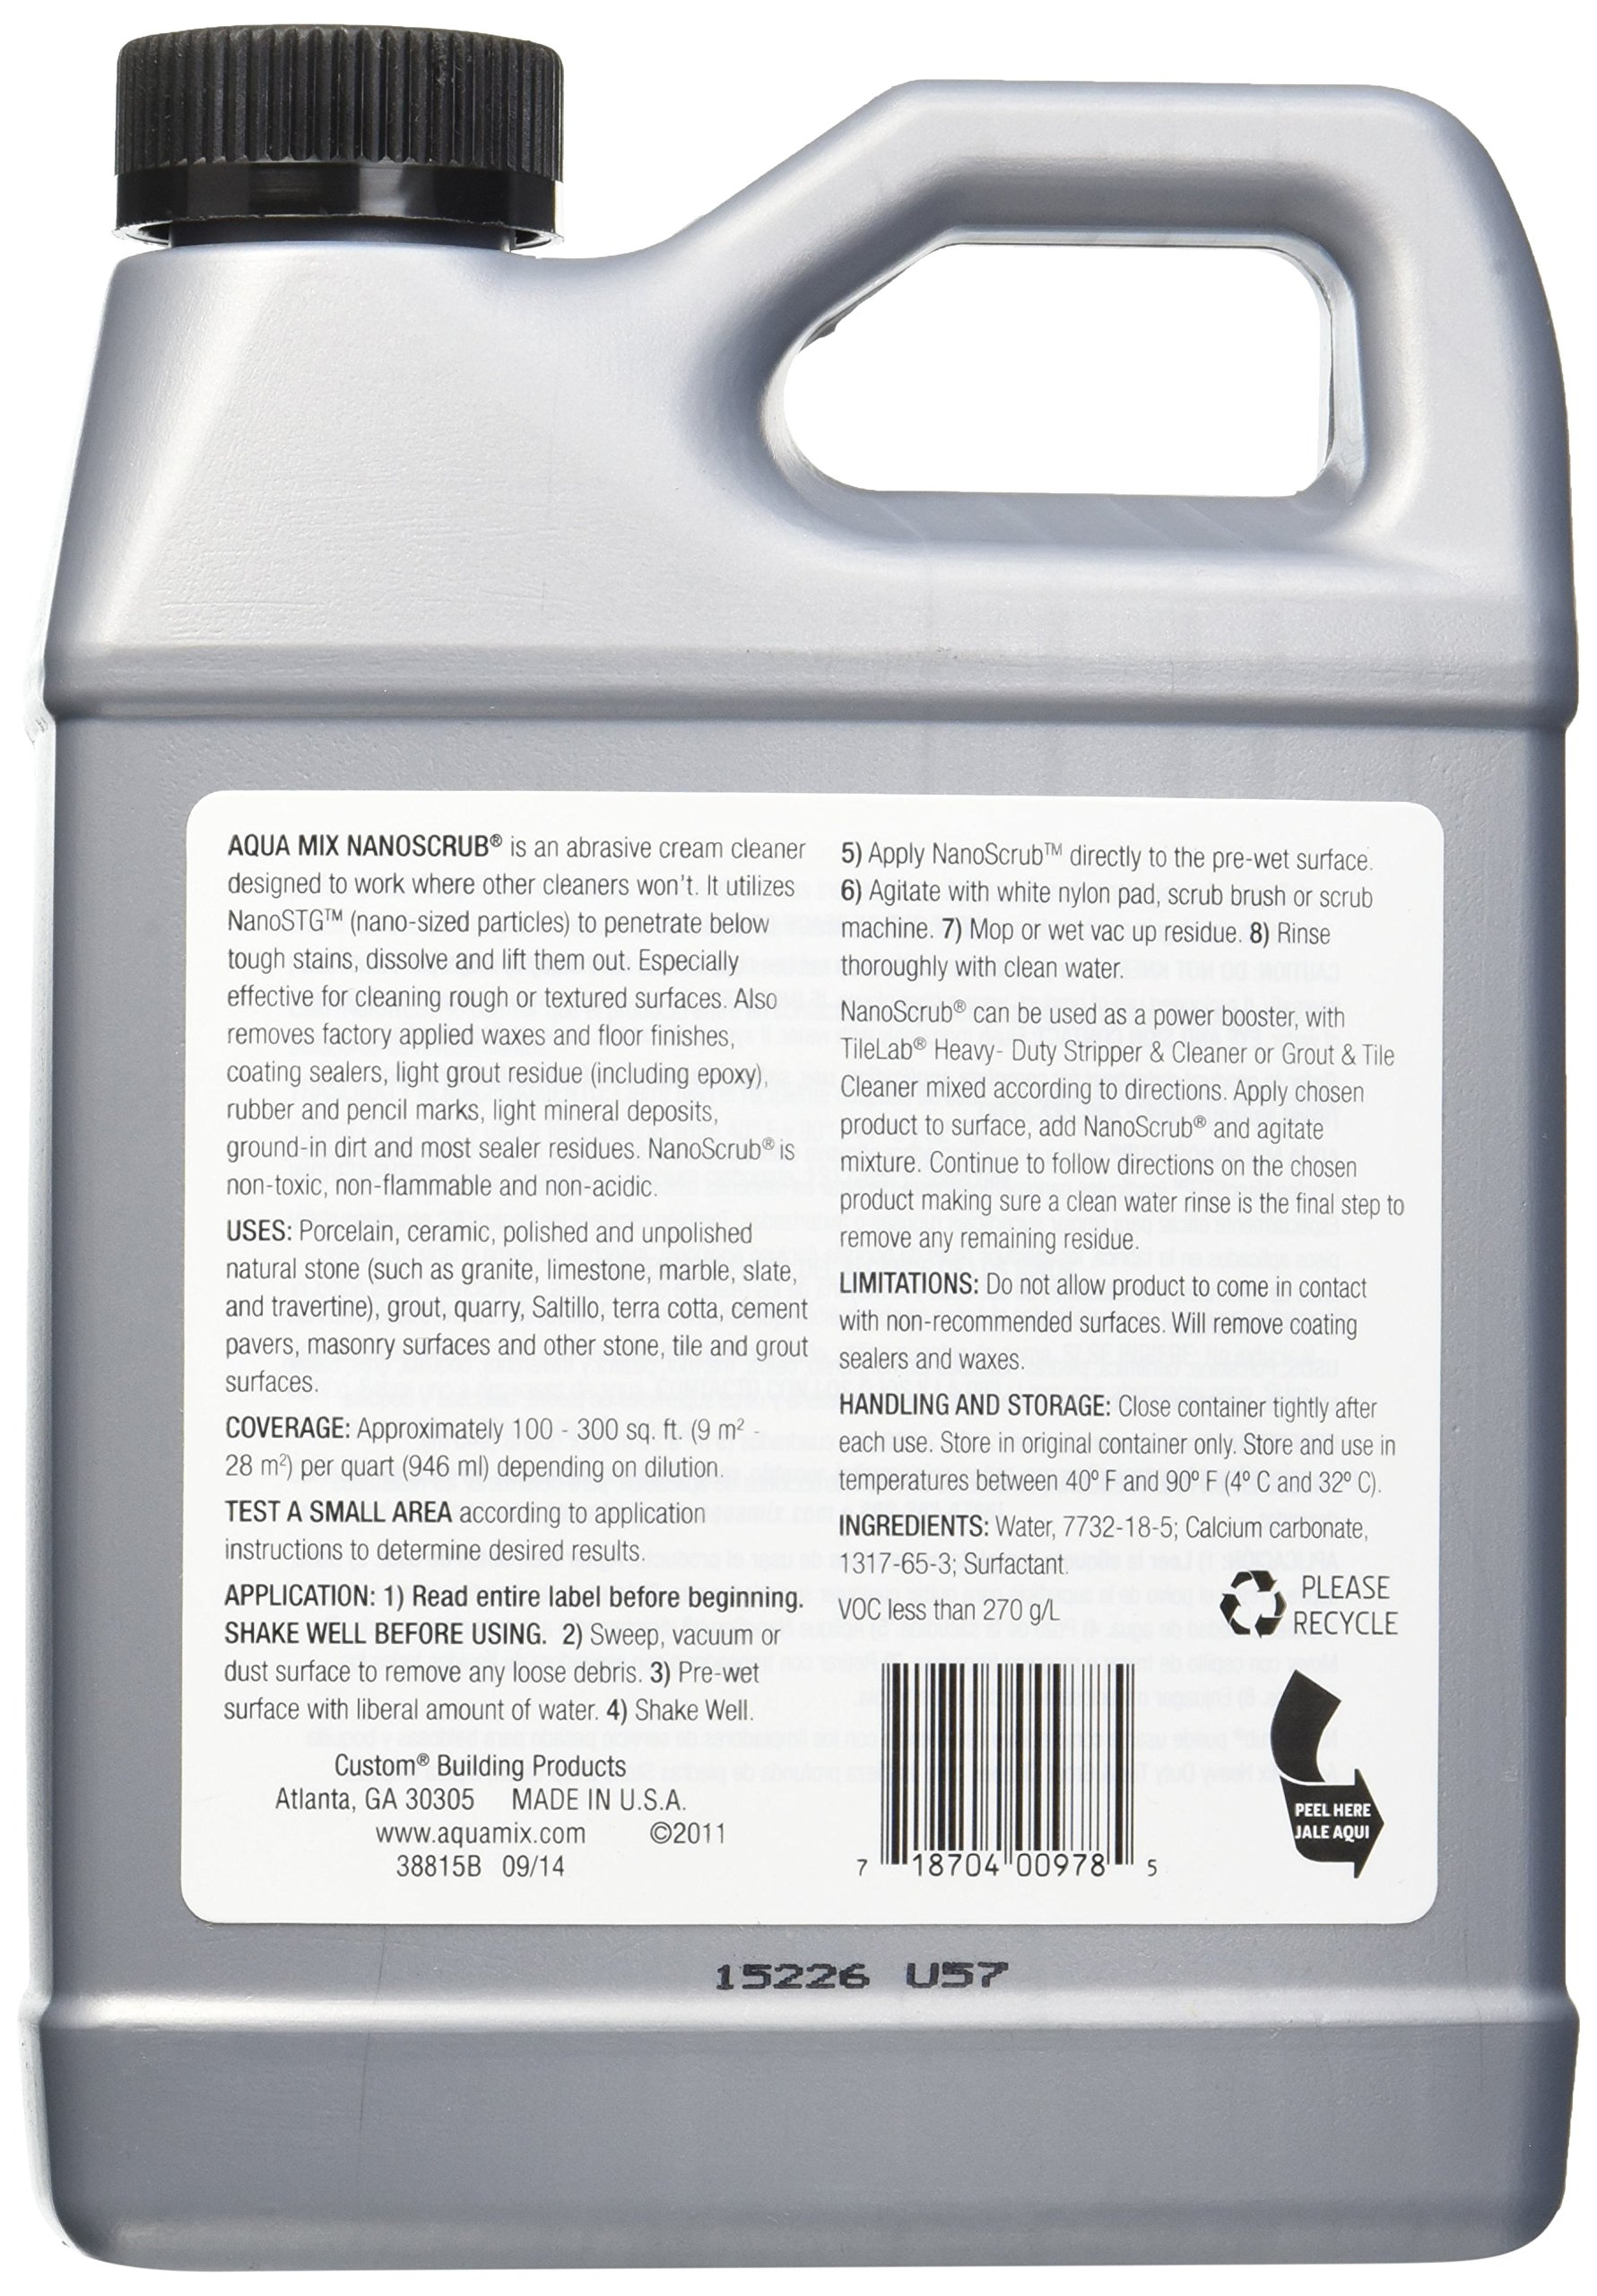 Aqua Mix Nanoscrub Powerful Abrasive Cleaner Quart 32 oz